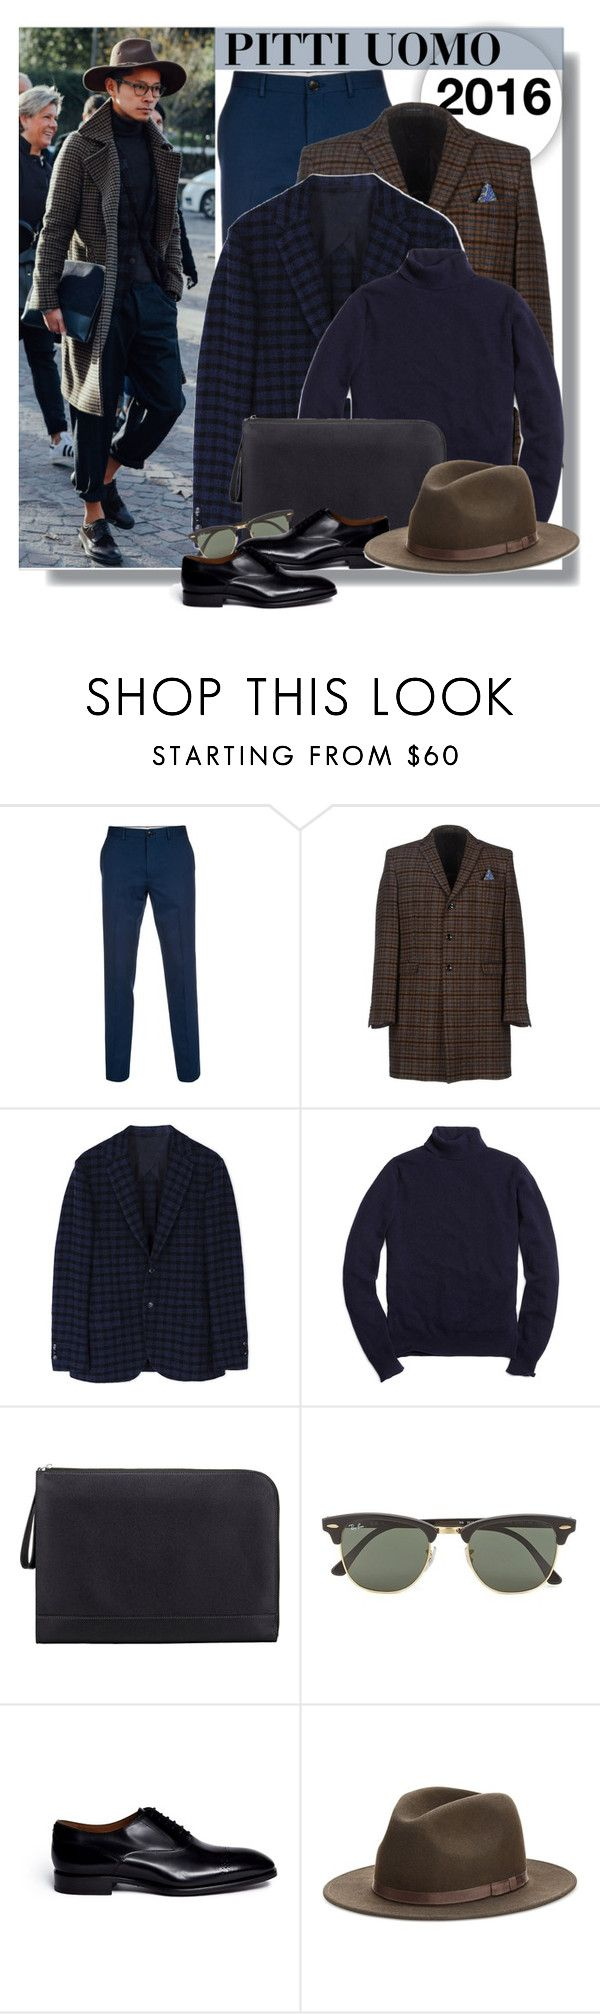 """PITTI UOMO 2016 - THANKS FOR THE MEN CATEGORY, FINALLY"" by anne-mclayne ❤ liked on Polyvore featuring Paul Smith, Manuel Ritz, MP di Massimo Piombo, Brooks Brothers, Valextra, Ray-Ban, Rolando Sturlini, Country Gentlemen, mens and men"